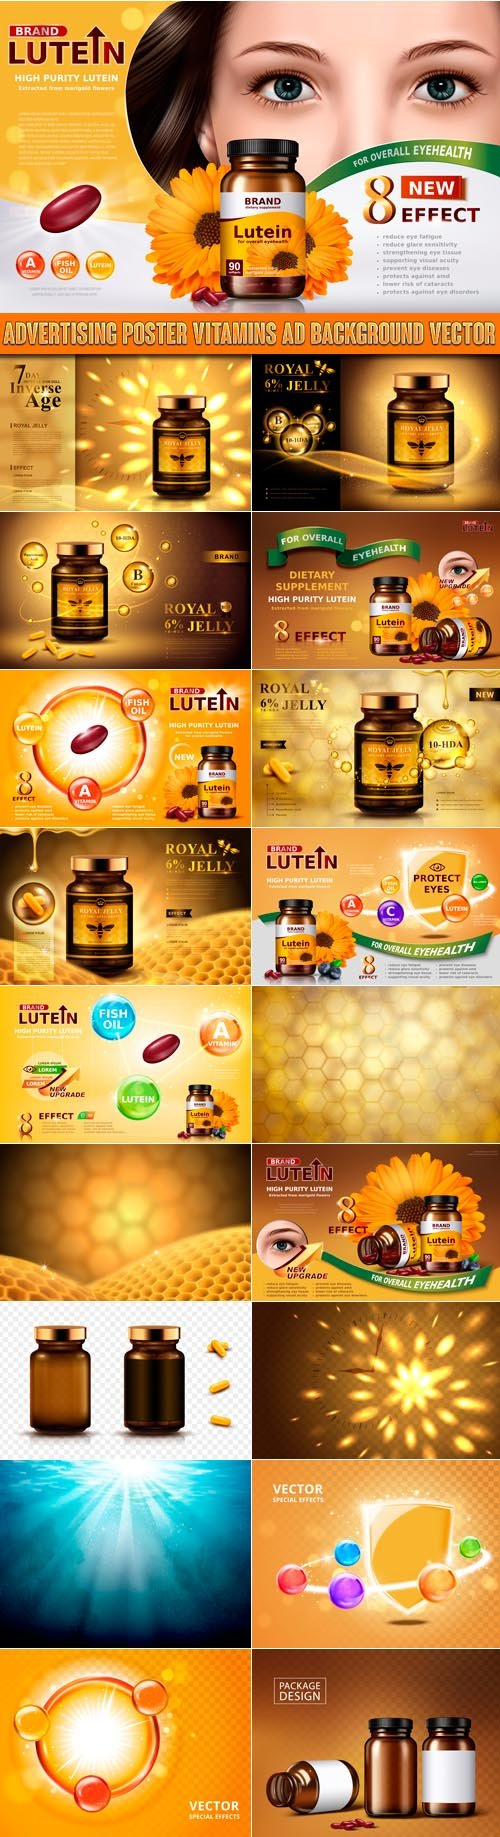 Advertising poster vitamins ad background vector